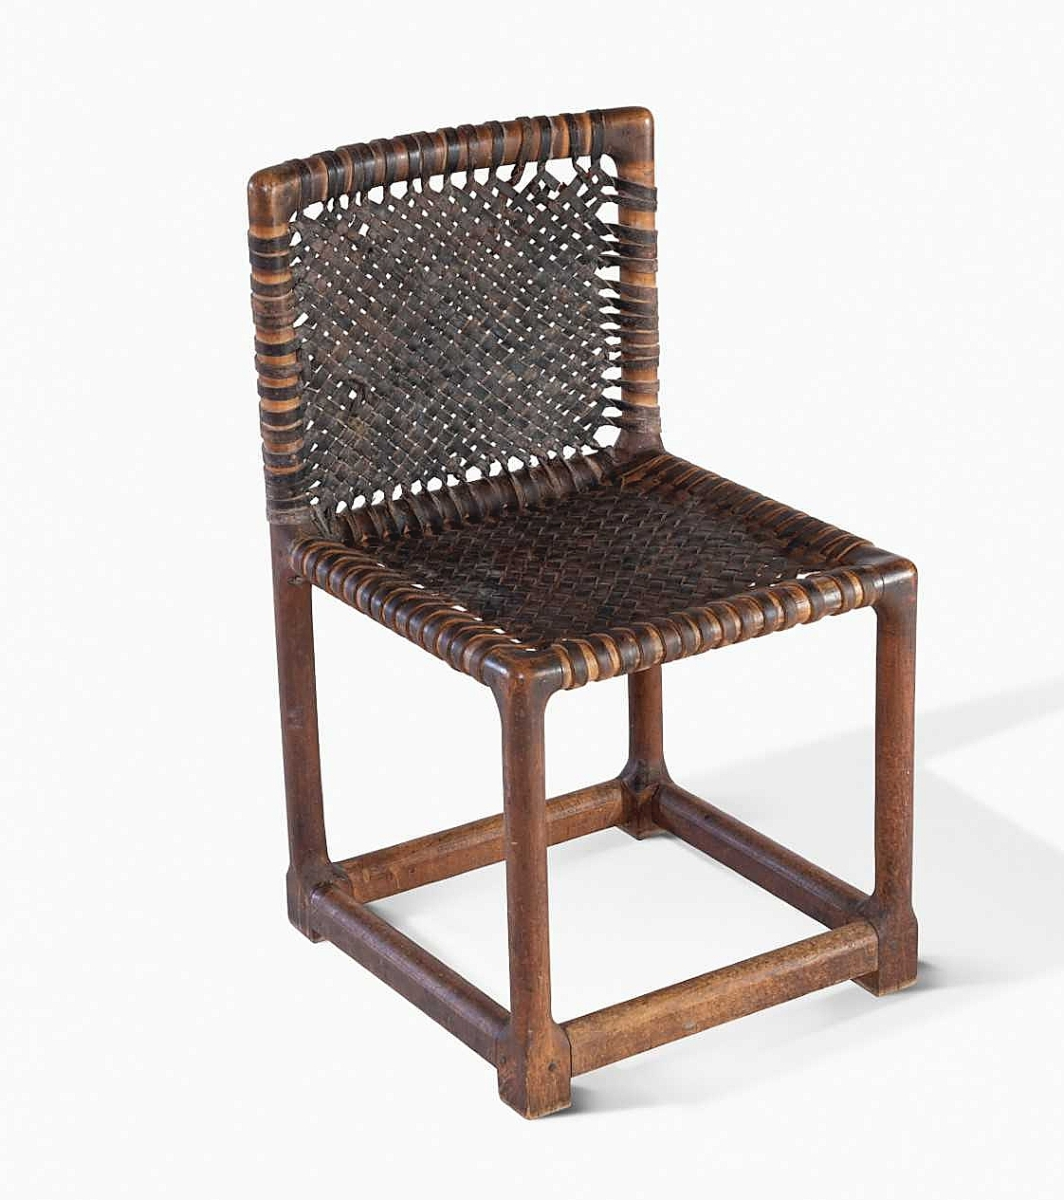 Wharton Esherick, Hessian Hills Child's Chair, 1931. Red oak and leather. In 1924, Wharton Esherick created a prototype for a child's chair, now in the permanent collection of the Wharton Esherick Museum, of which he would make six the following year. These chairs were made in lieu of tuition payment for his then 9-year-old daughter, Mary, to accompany her to the newly minted progressive school for children in Croton, N.Y., known as the Hessian Hills School. In the fall of 1930, the school suffered a fire that took with it the chairs Esherick delivered in 1925. Funded by insurance money, Esherick made 15 replacement chairs in 1931. This is one of three 1931 Hessian Hill chairs known to exist. Two others are in the collection of the Modernism Museum Mount Dora. Moderne Gallery.